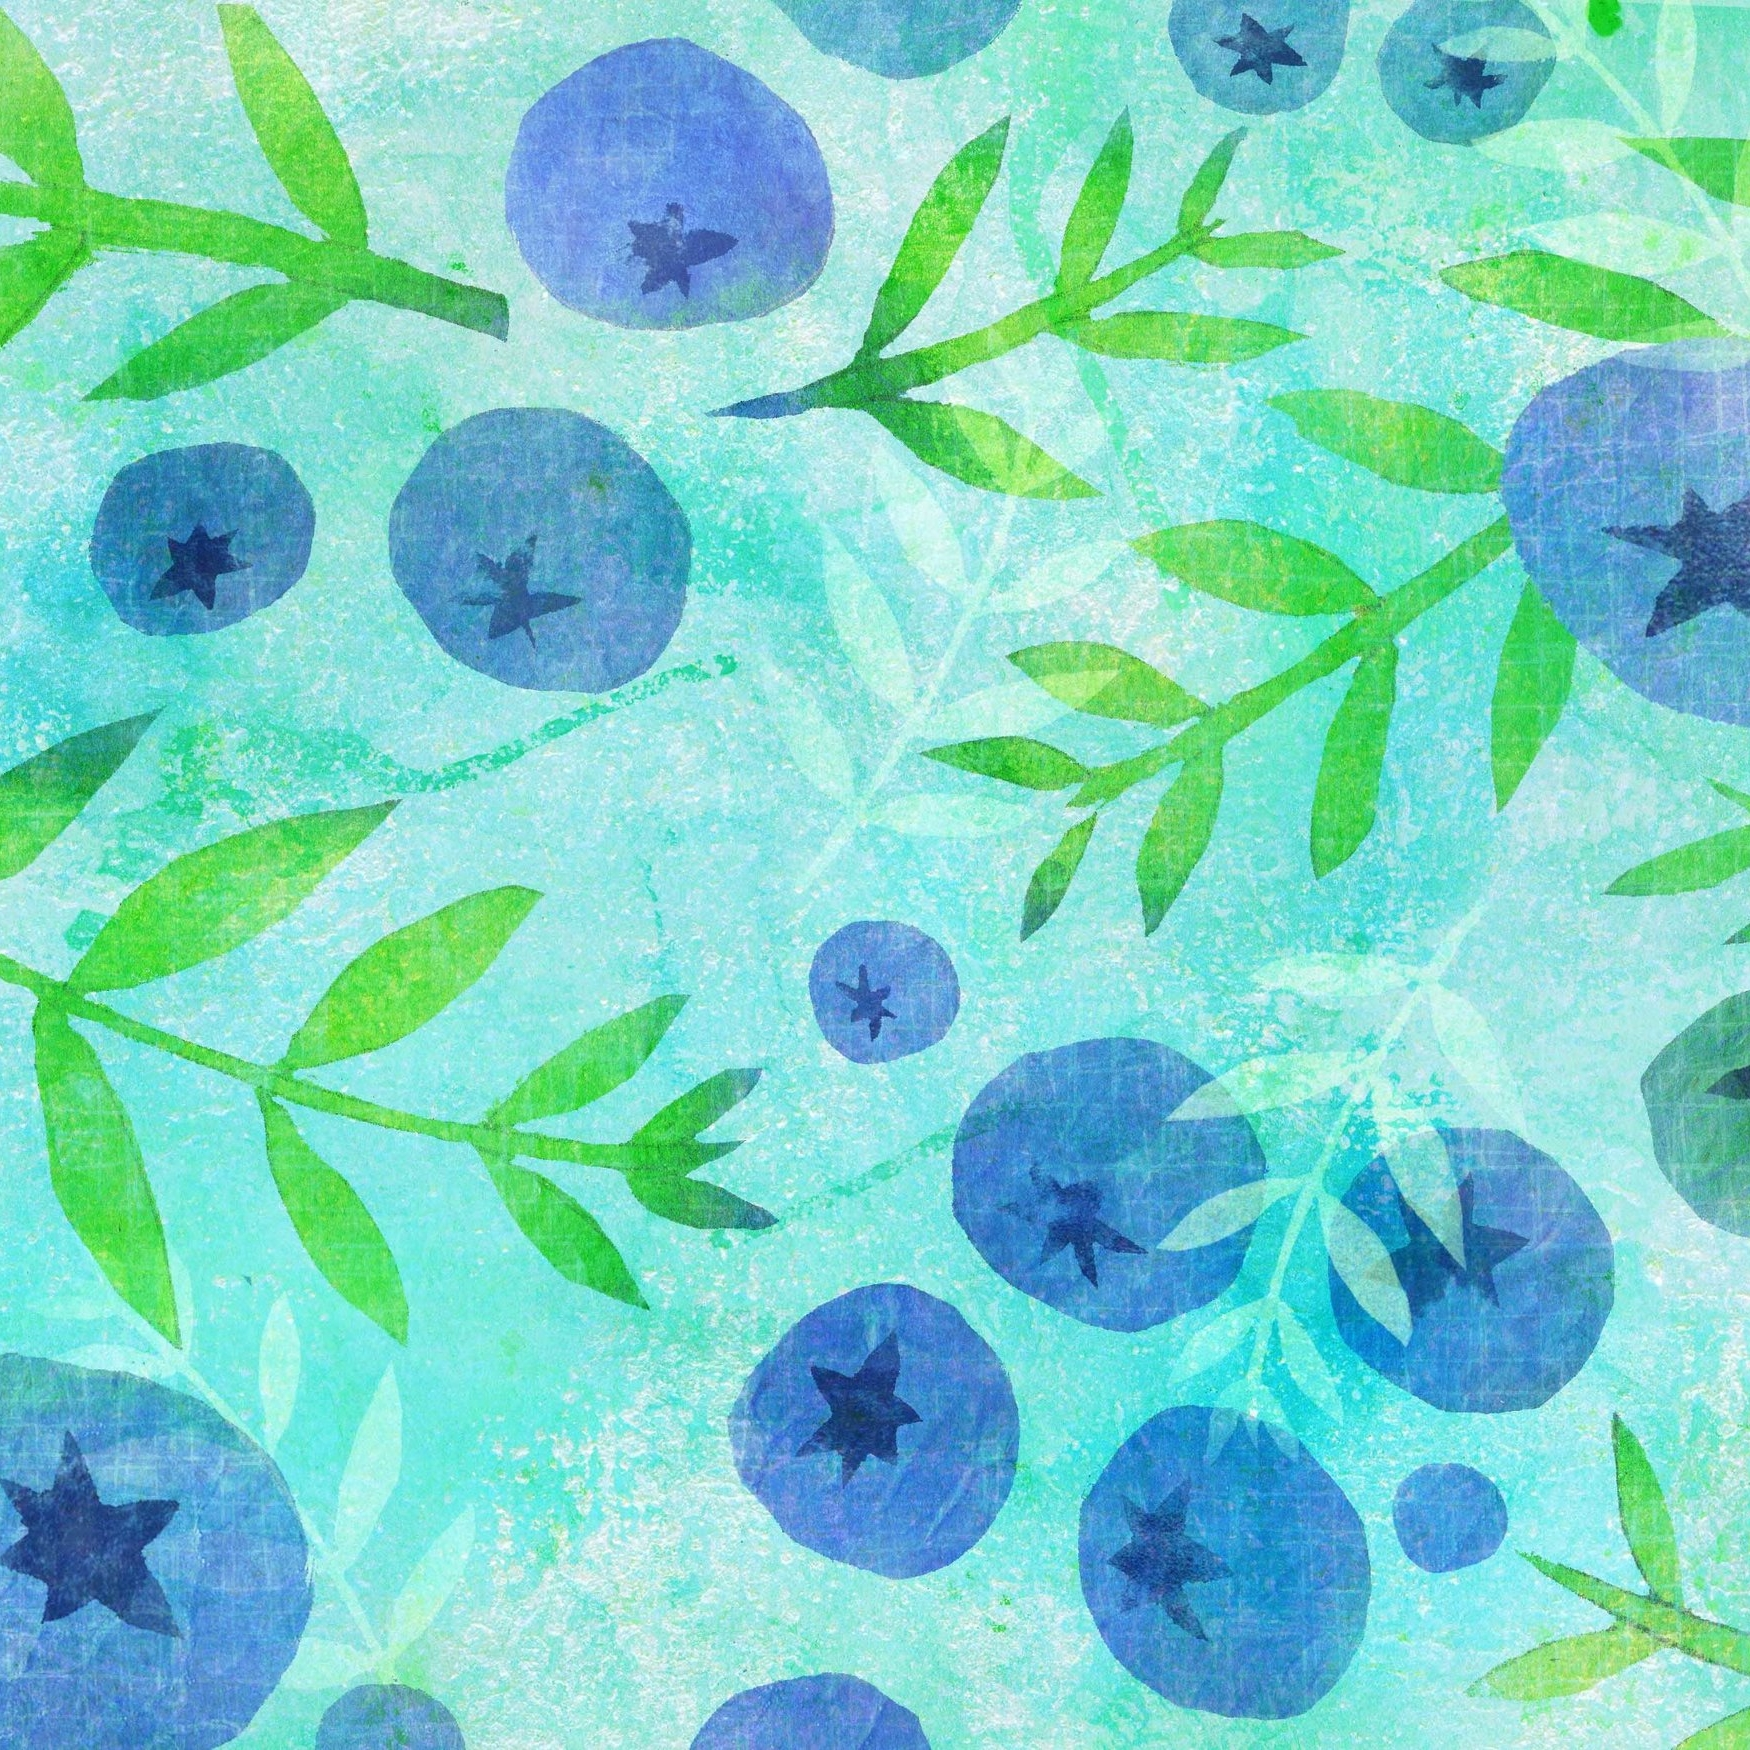 blueberries-pattern.jpg